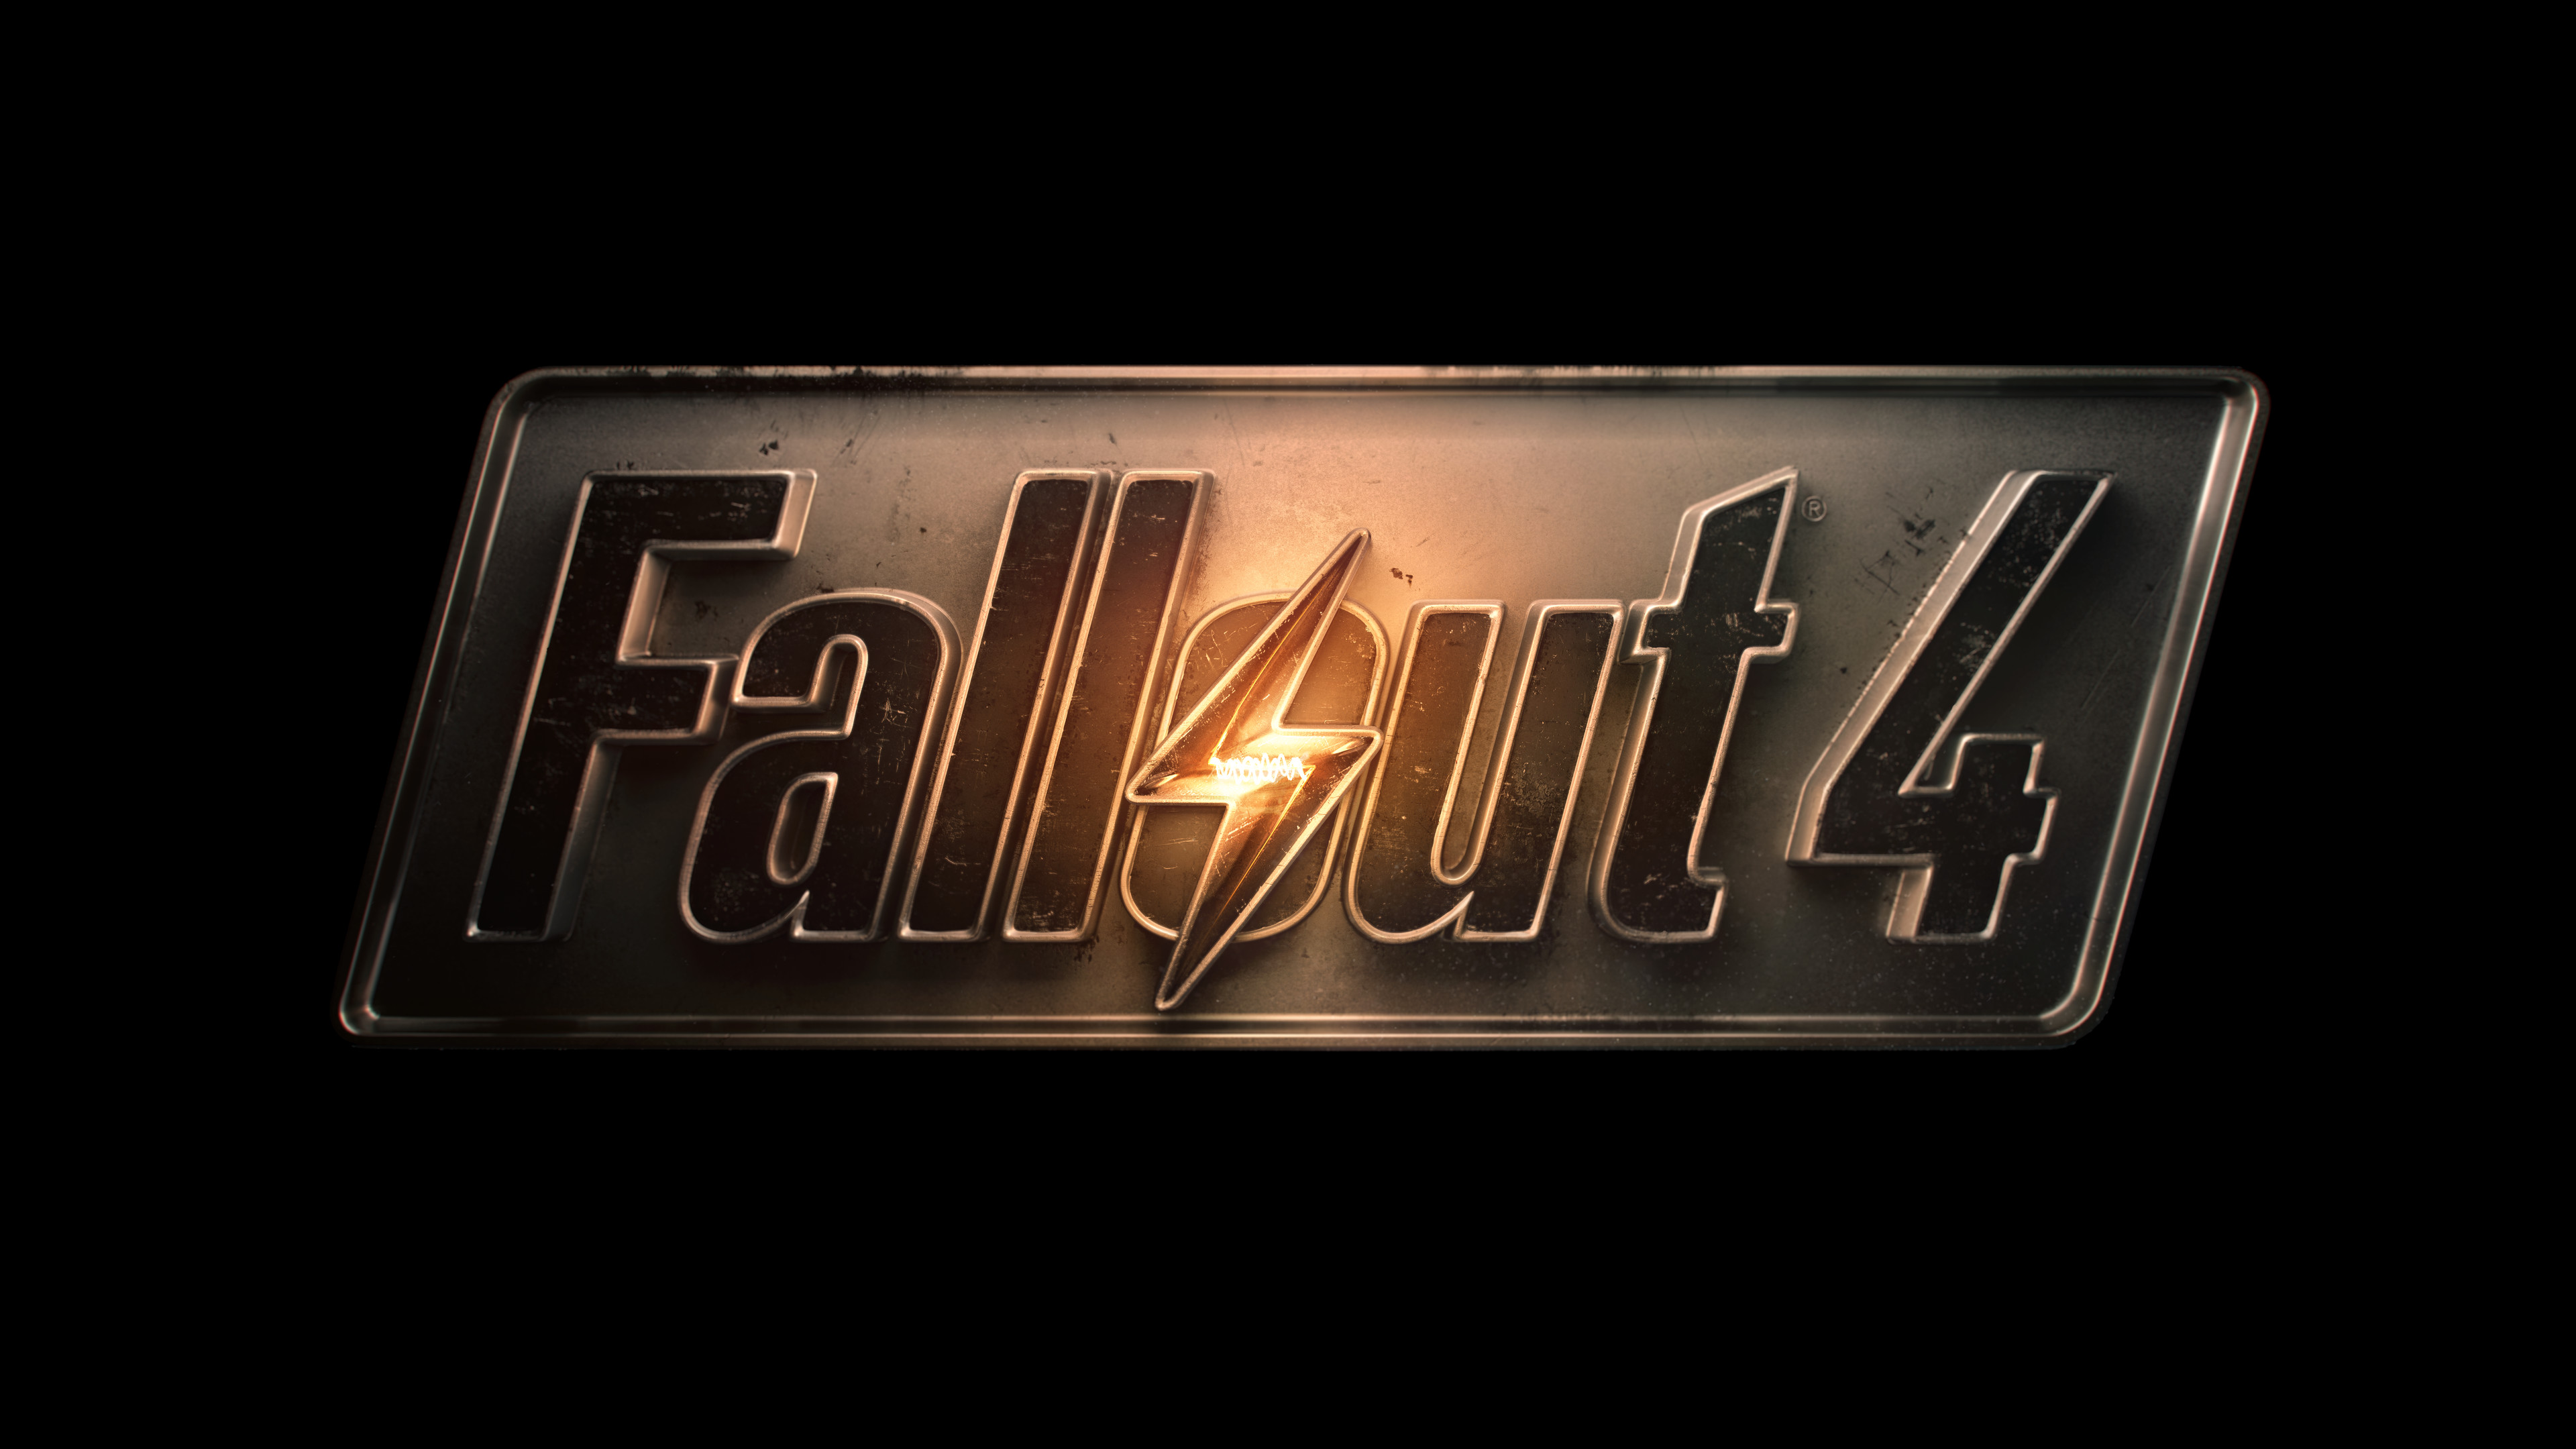 Fallout 4 Wallpapers in Best Resolutions   Kara Millet NMgnCP.com